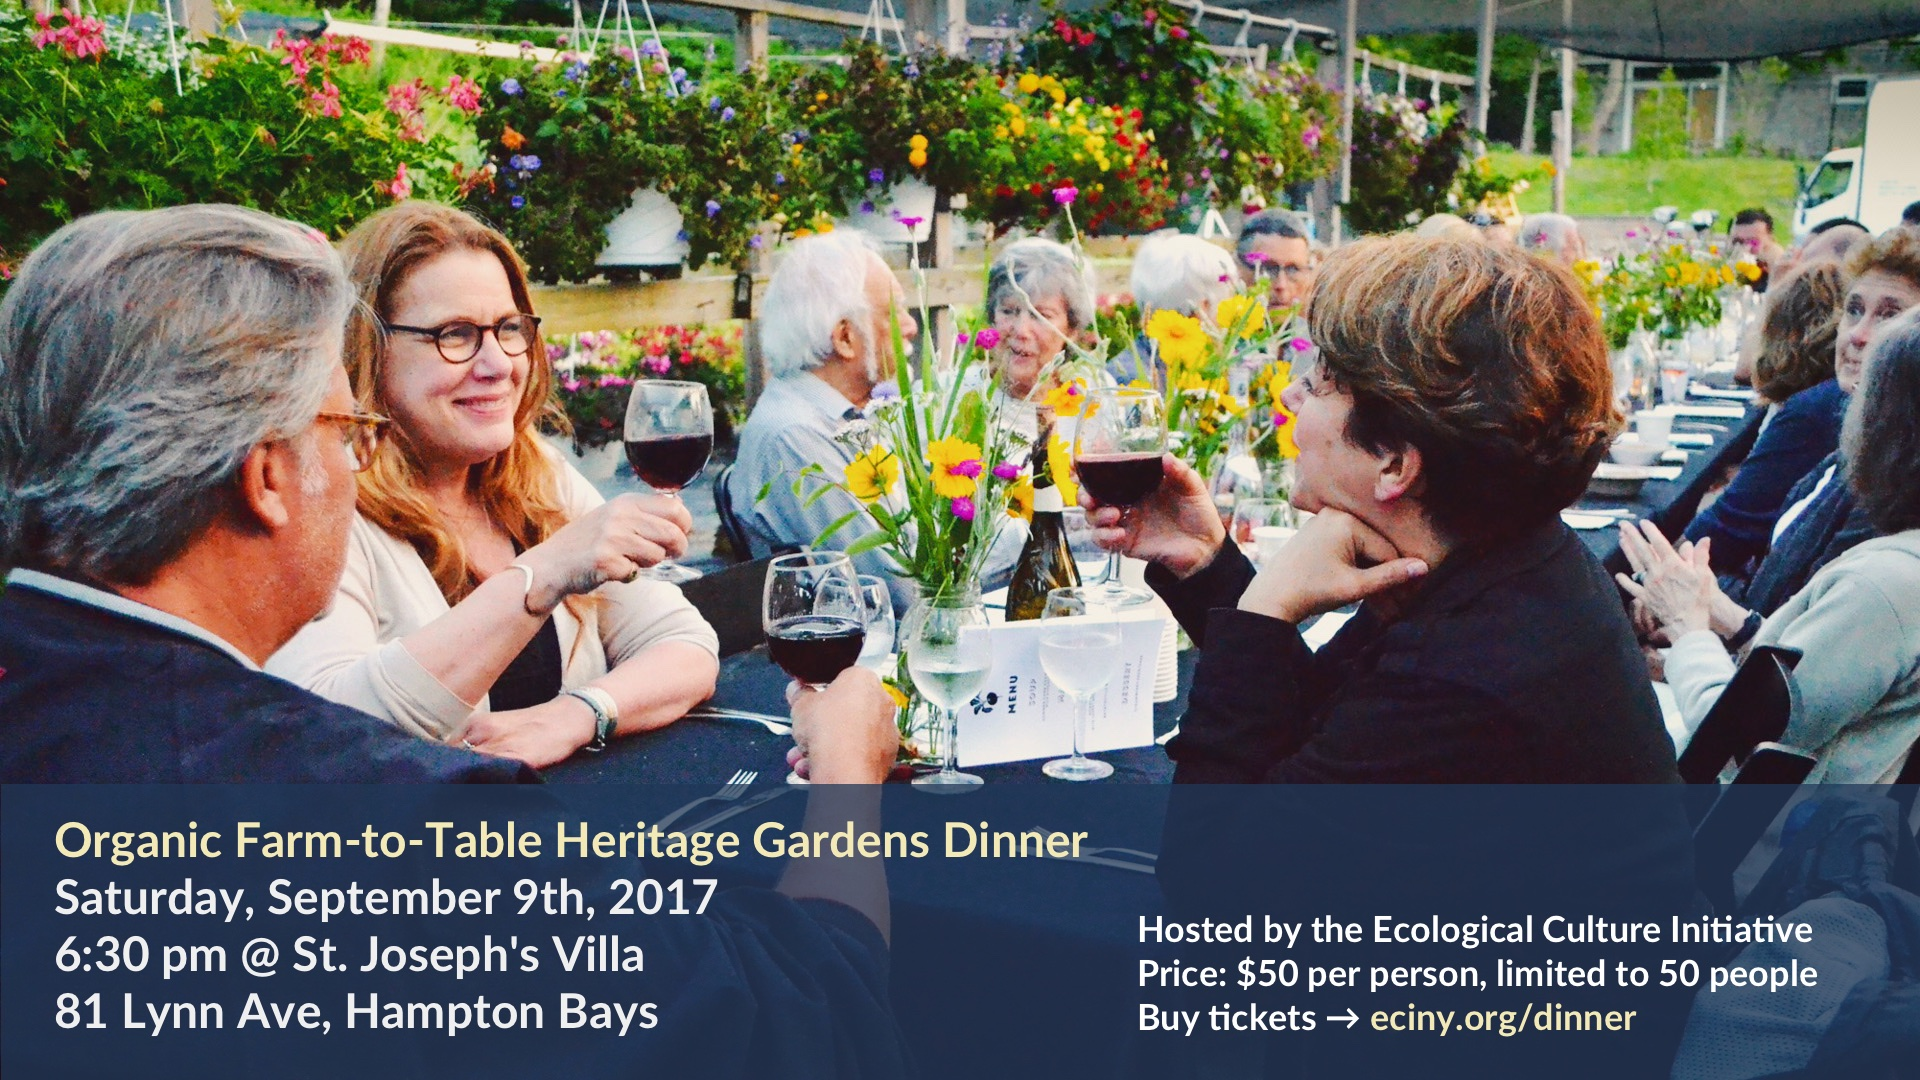 ECI Organic Farm-to-Table Heritage Gardens Dinner - Sept 9th, 2017 - FB cover 1920x1080.jpg